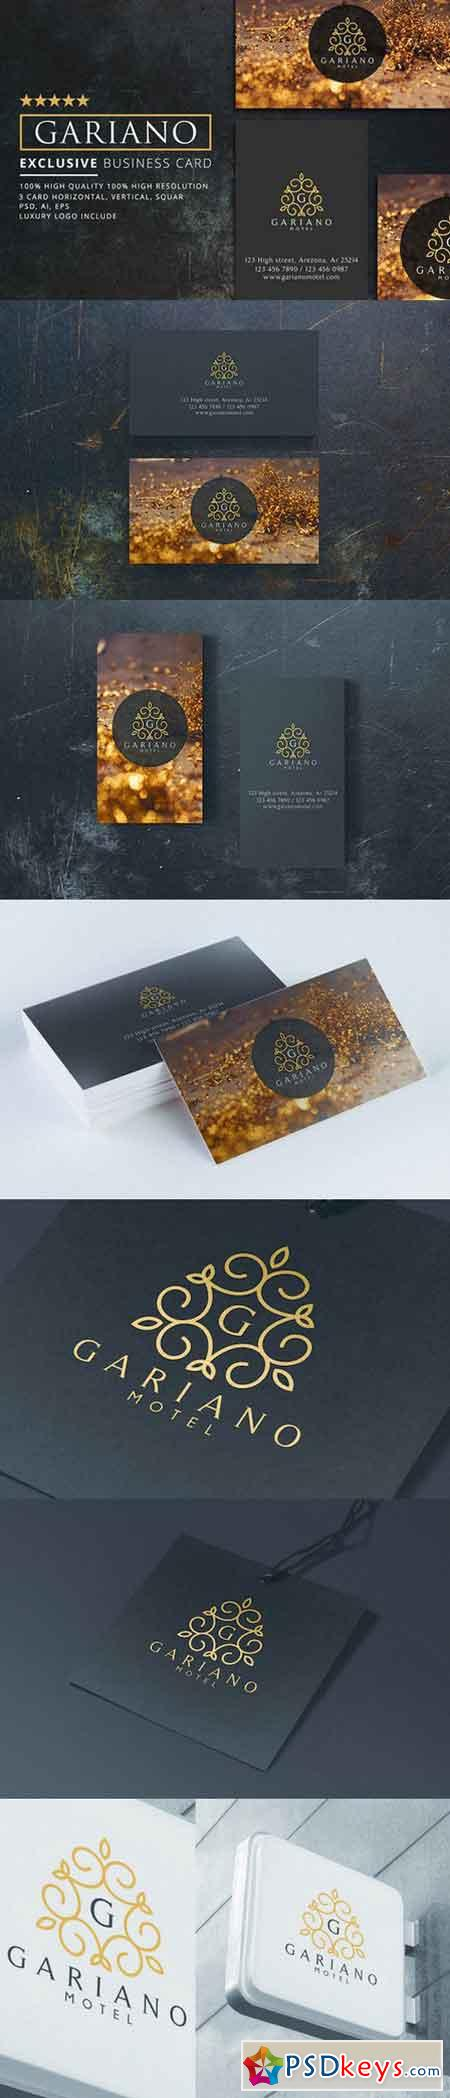 Gariano Luxury Business Card 3 in 1 Free